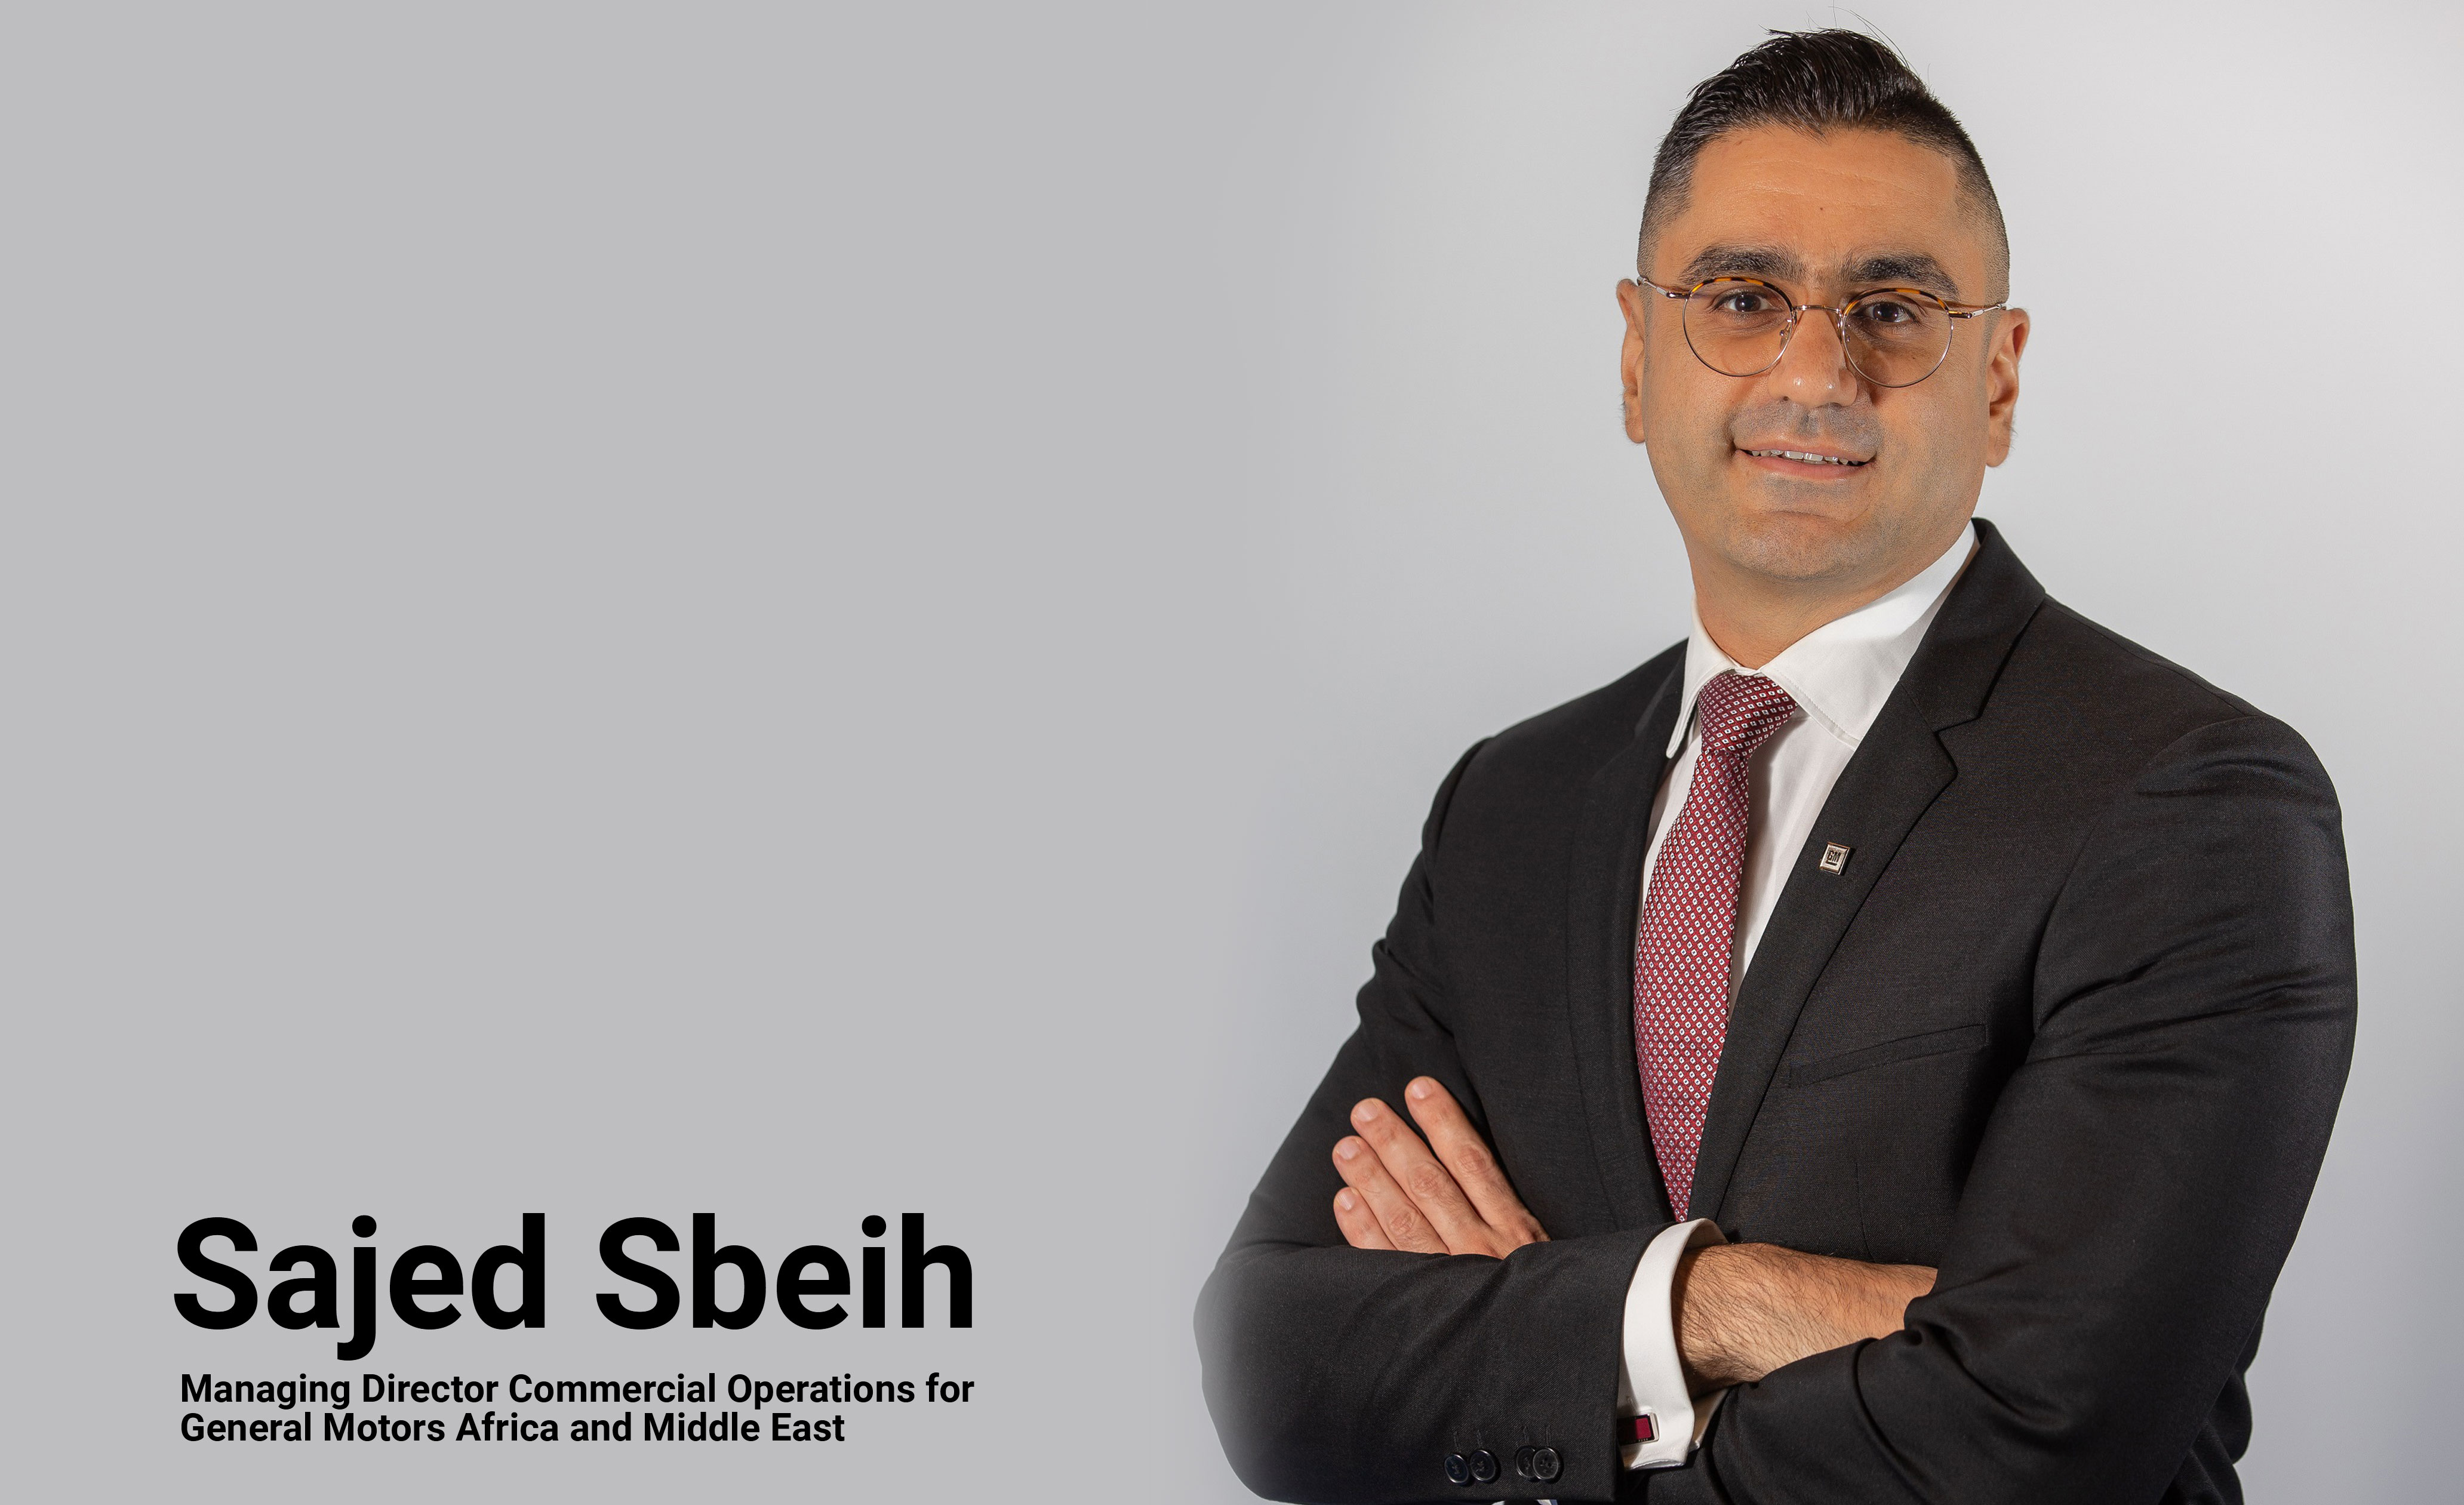 Sajed Sbeih to Take Over as Managing Director Commercial Operations for General Motors Africa and Middle East